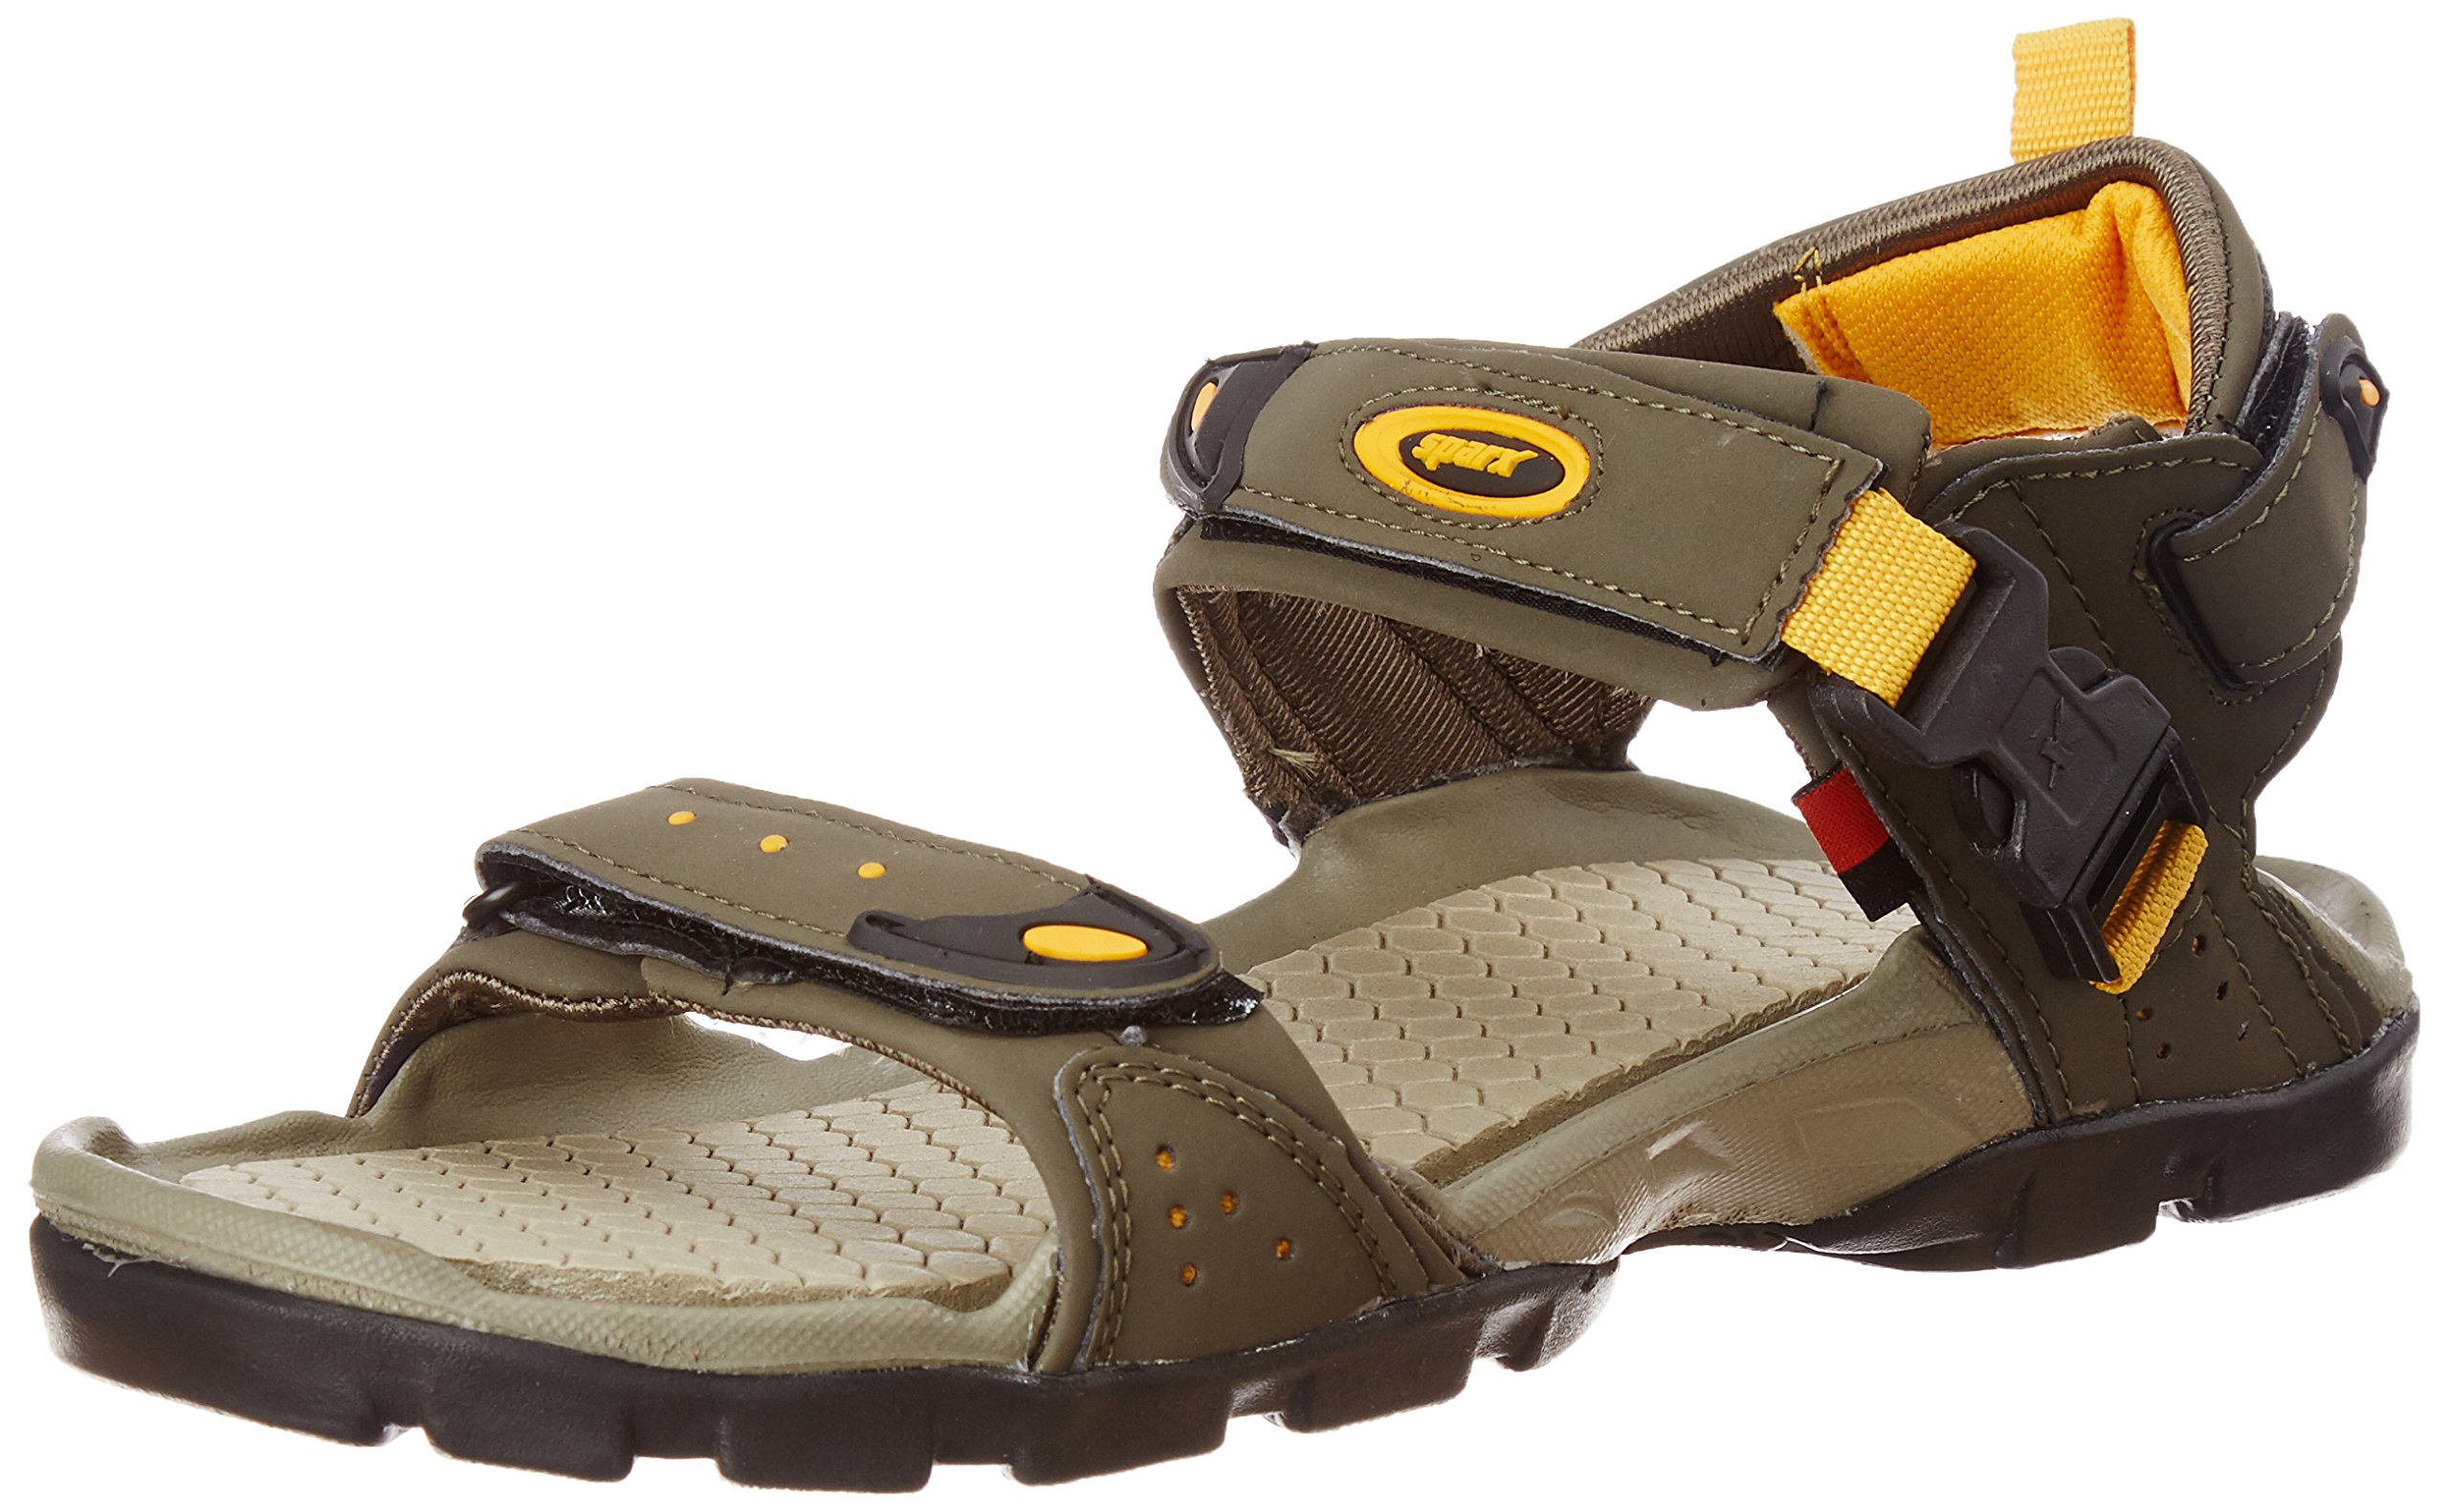 d7a1dfb29ca1b Sparx Men's Athletic and Outdoor Sandals